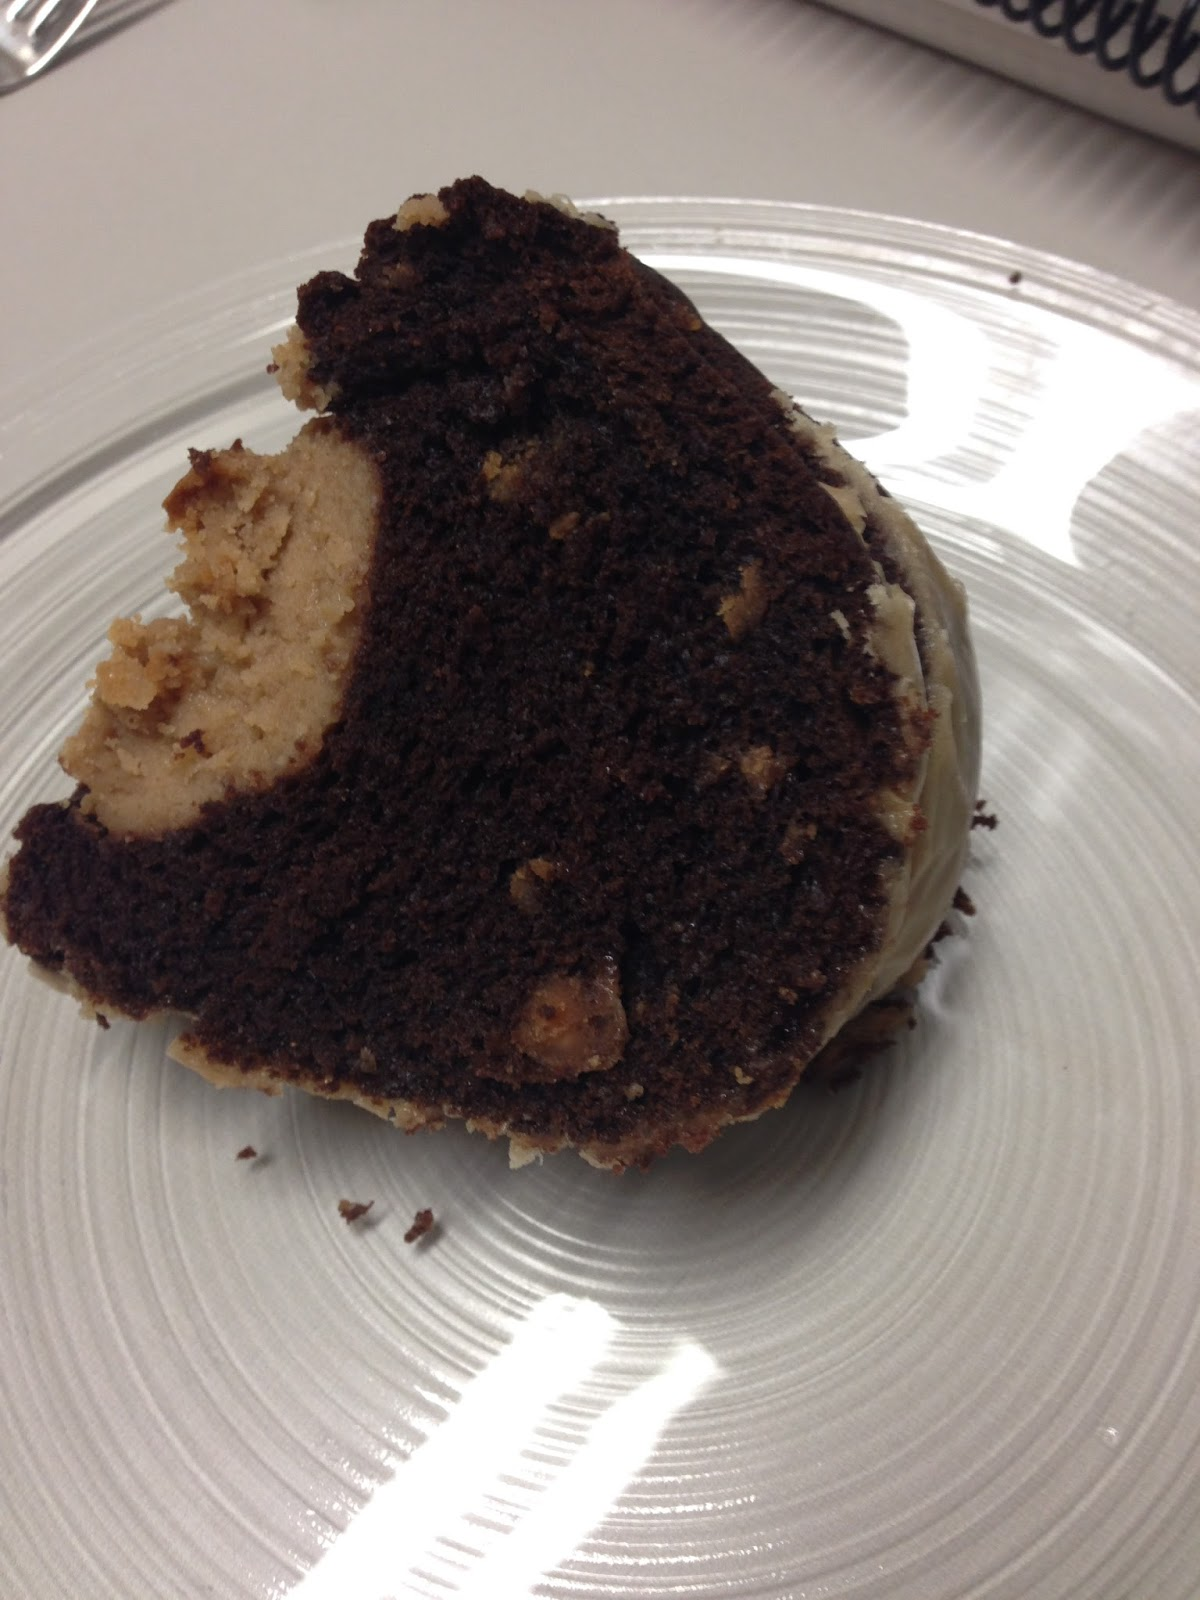 Laura's Culinary Adventures: Chocolate Bundt with Peanut Butter ...